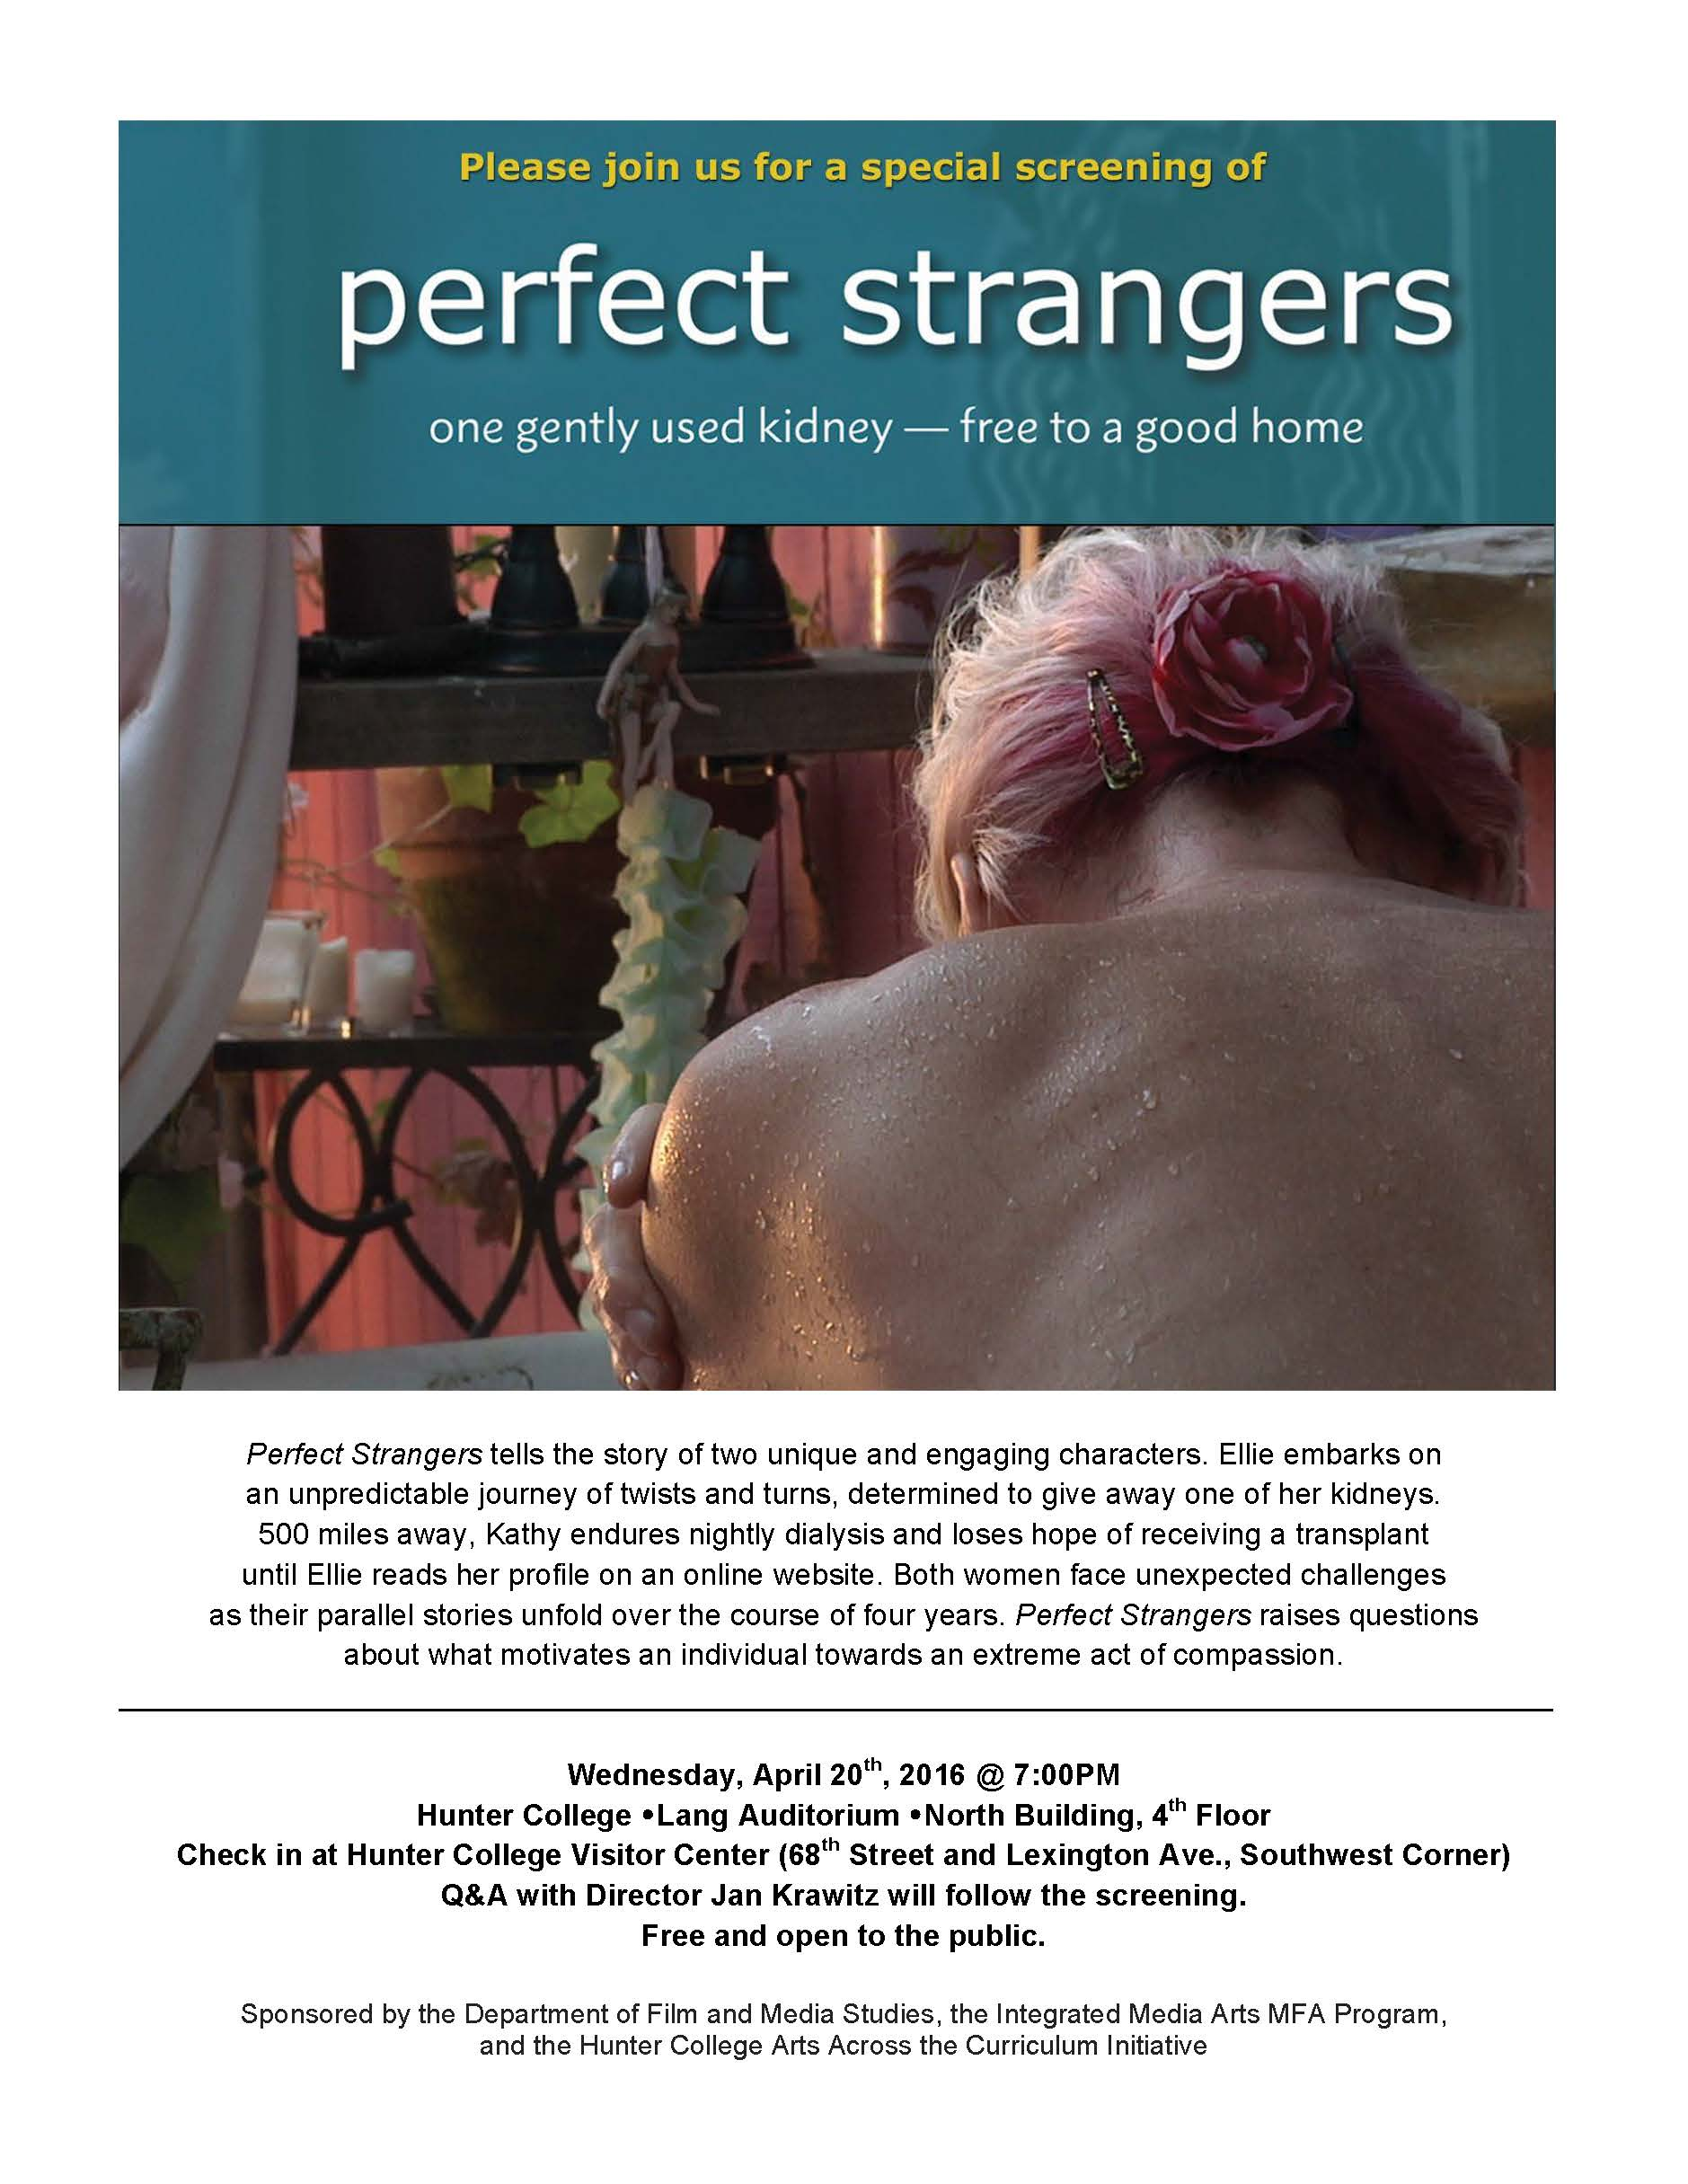 Flyer for the film Perfect Strangers